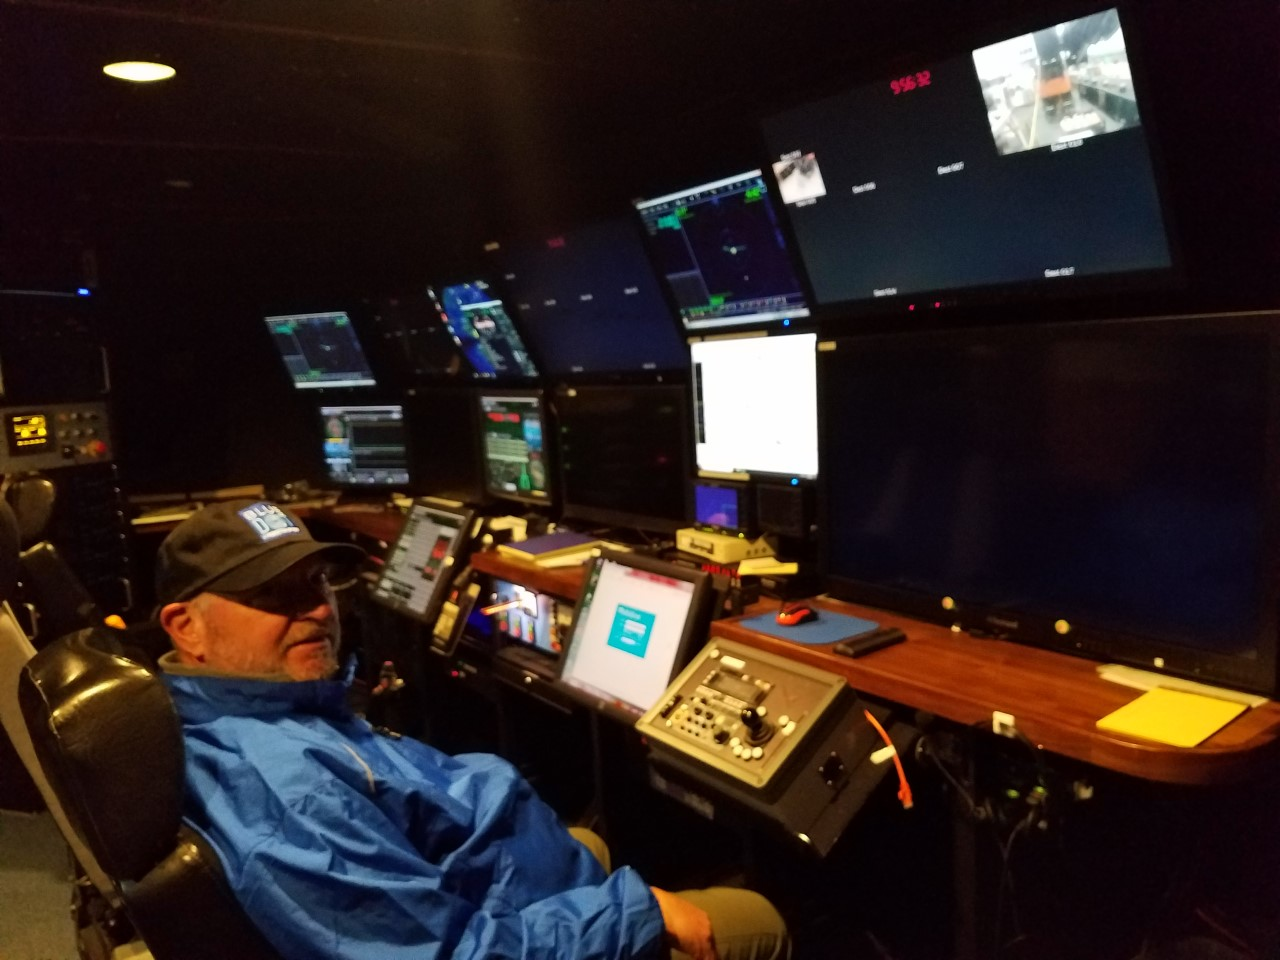 Caption: Photo by Kim Fulton Bennett of Dave Schlom in the control room of the MBARI Research Vessel Rachel Carson